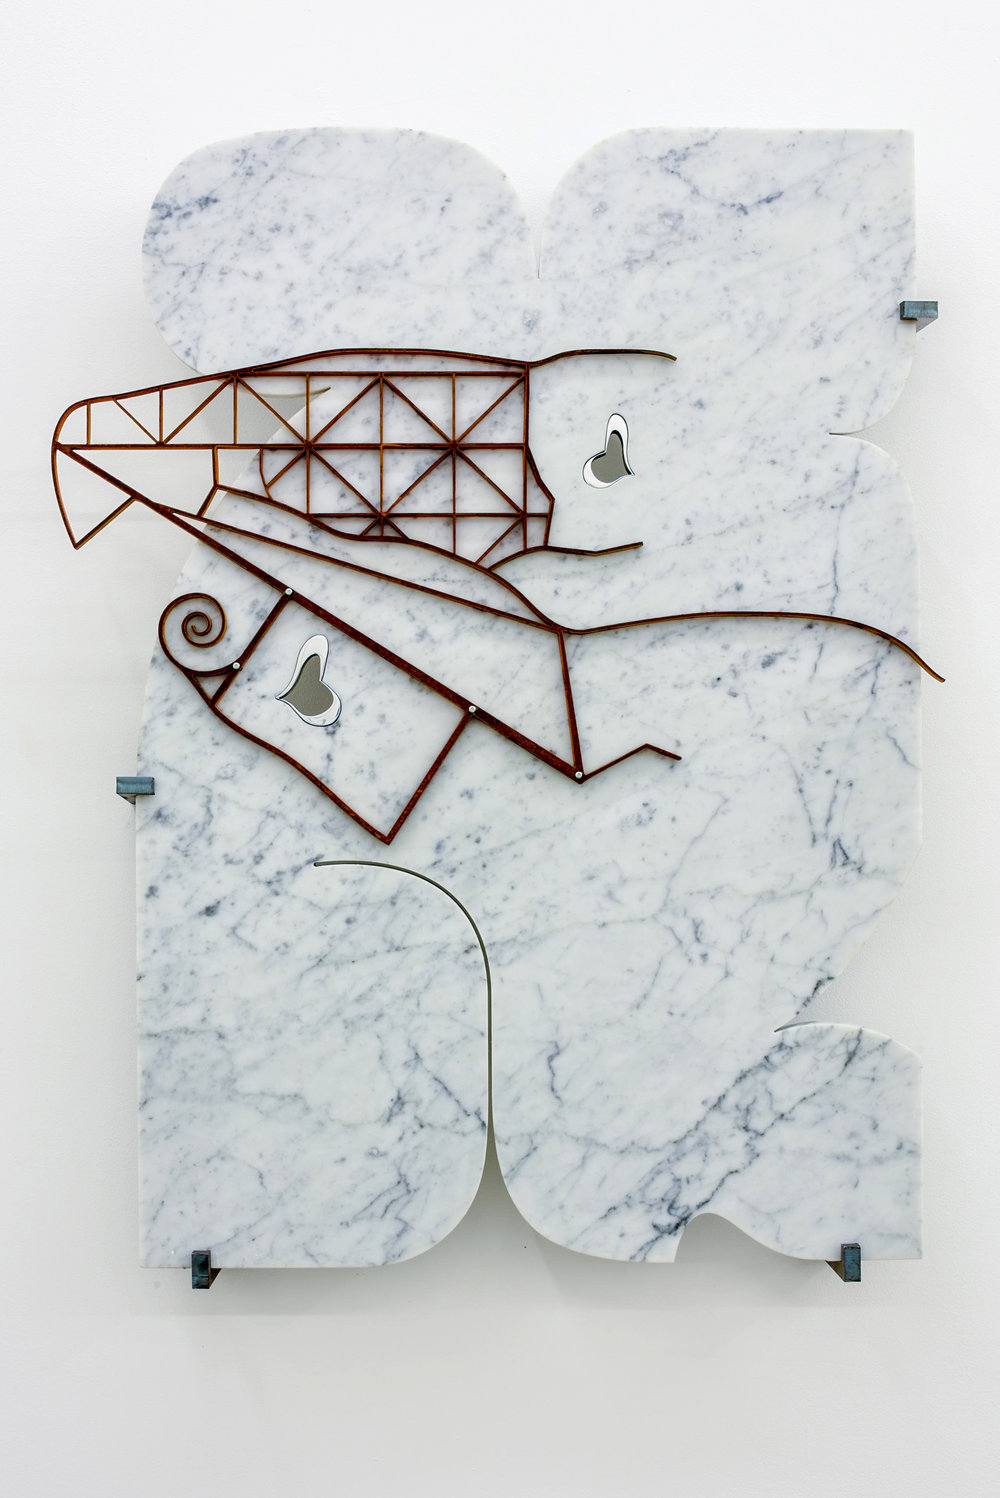 George Henry Longly,  A Trophic Cascade in the making , 2015, Waterjet cut marble, waterjet cut steel, steel brackets, 80 x 55 x 10 cm, courtesy the artist and Koppe Astner, Glasgow